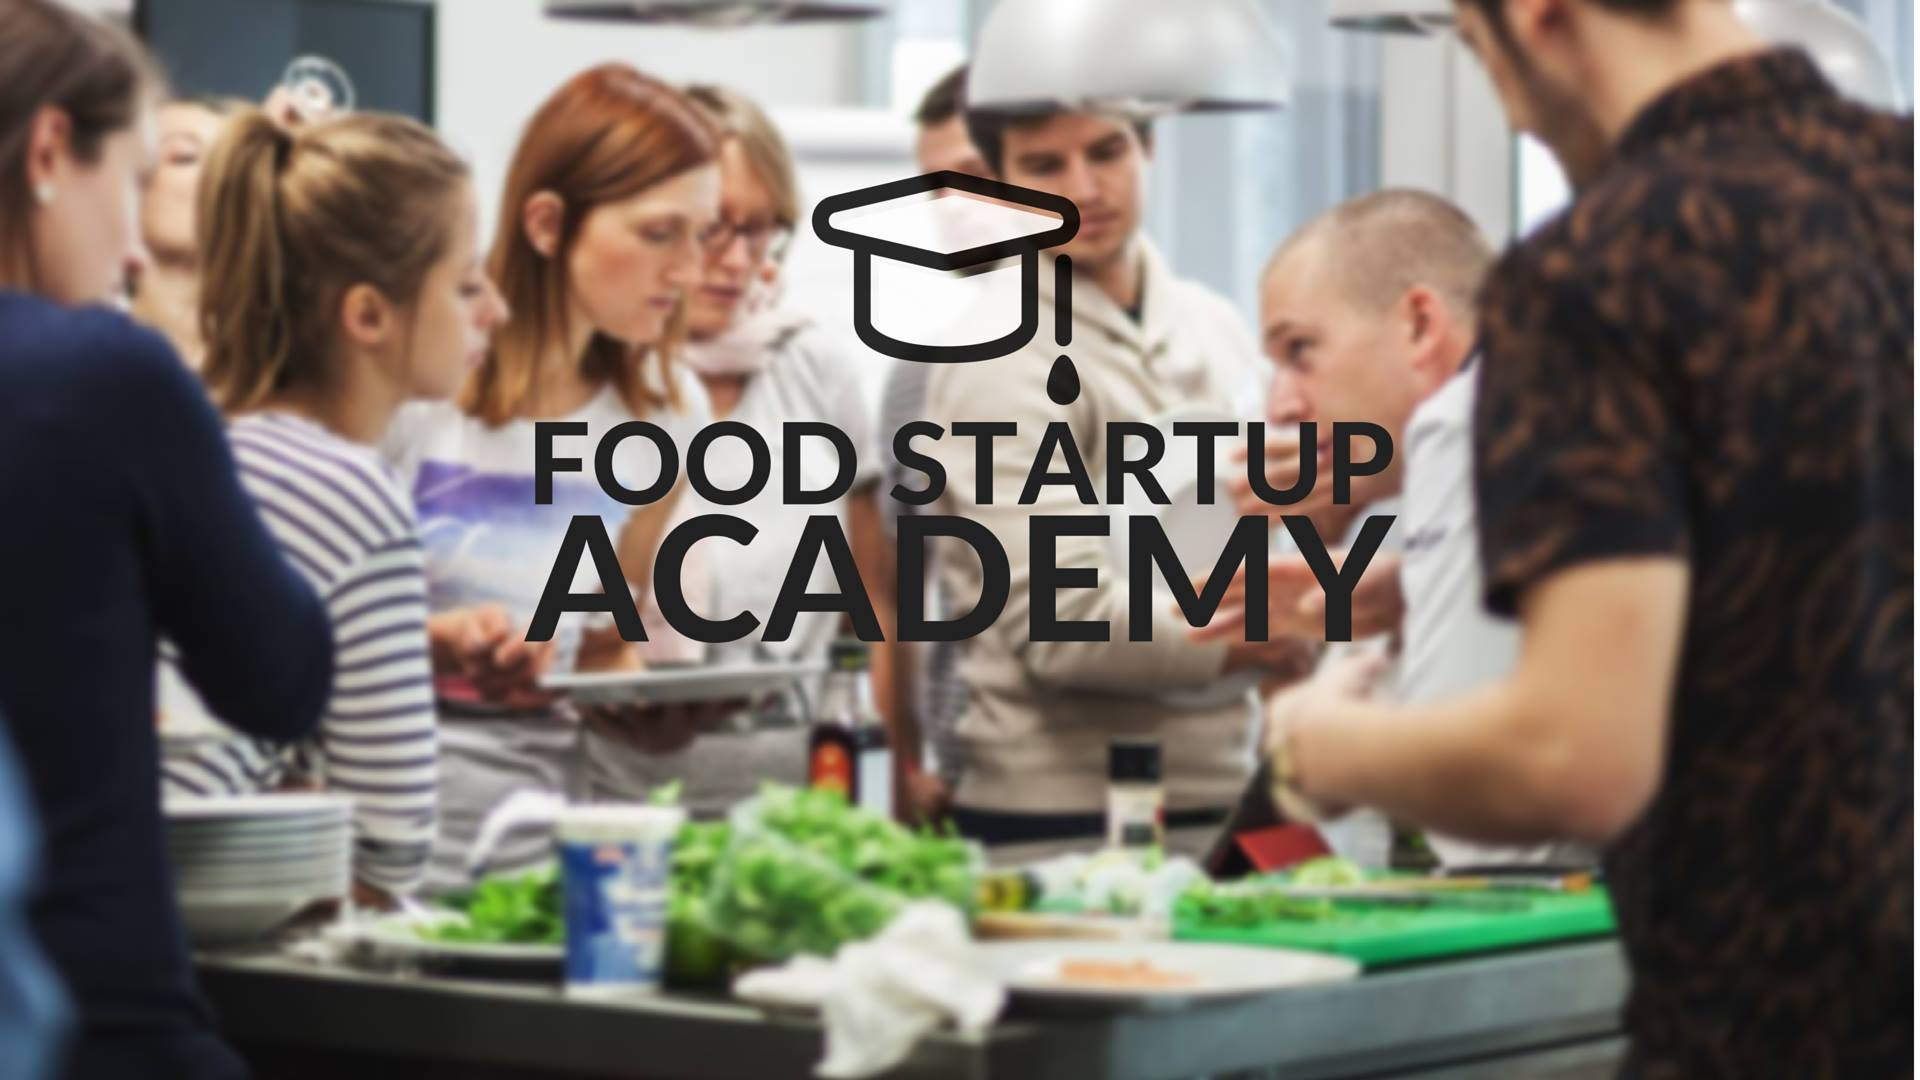 Food startup academy